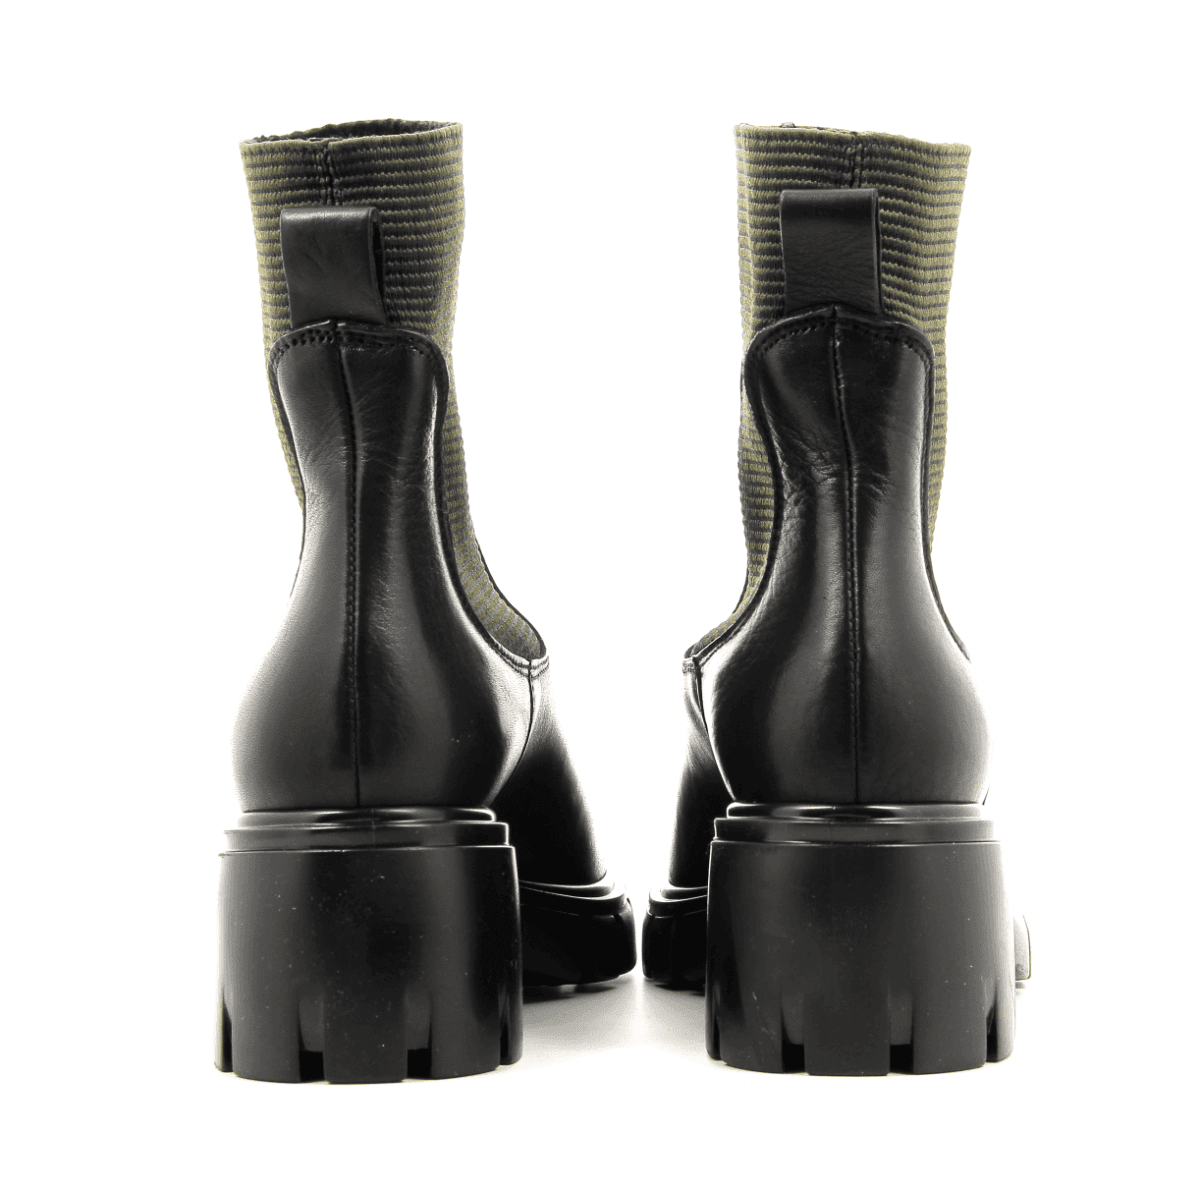 Bottines en cuir noir Sélection Garrice collection - 5680